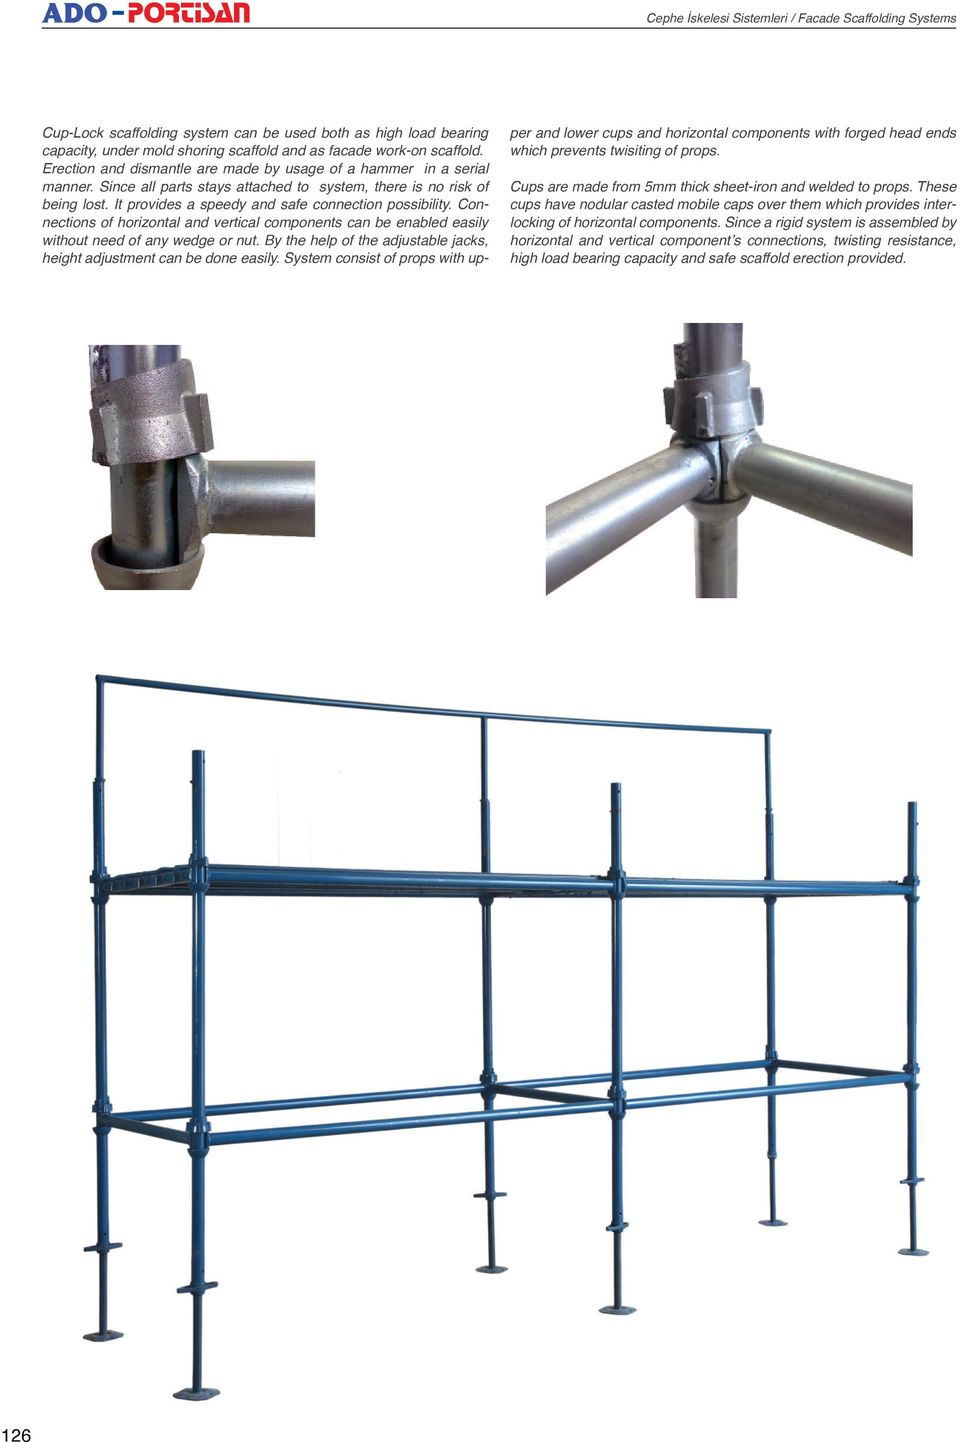 Connections of horizontal and vertical components can be enabled easily without need of any wedge or nut. By the help of the adjustable jacks, height adjustment can be done easily.